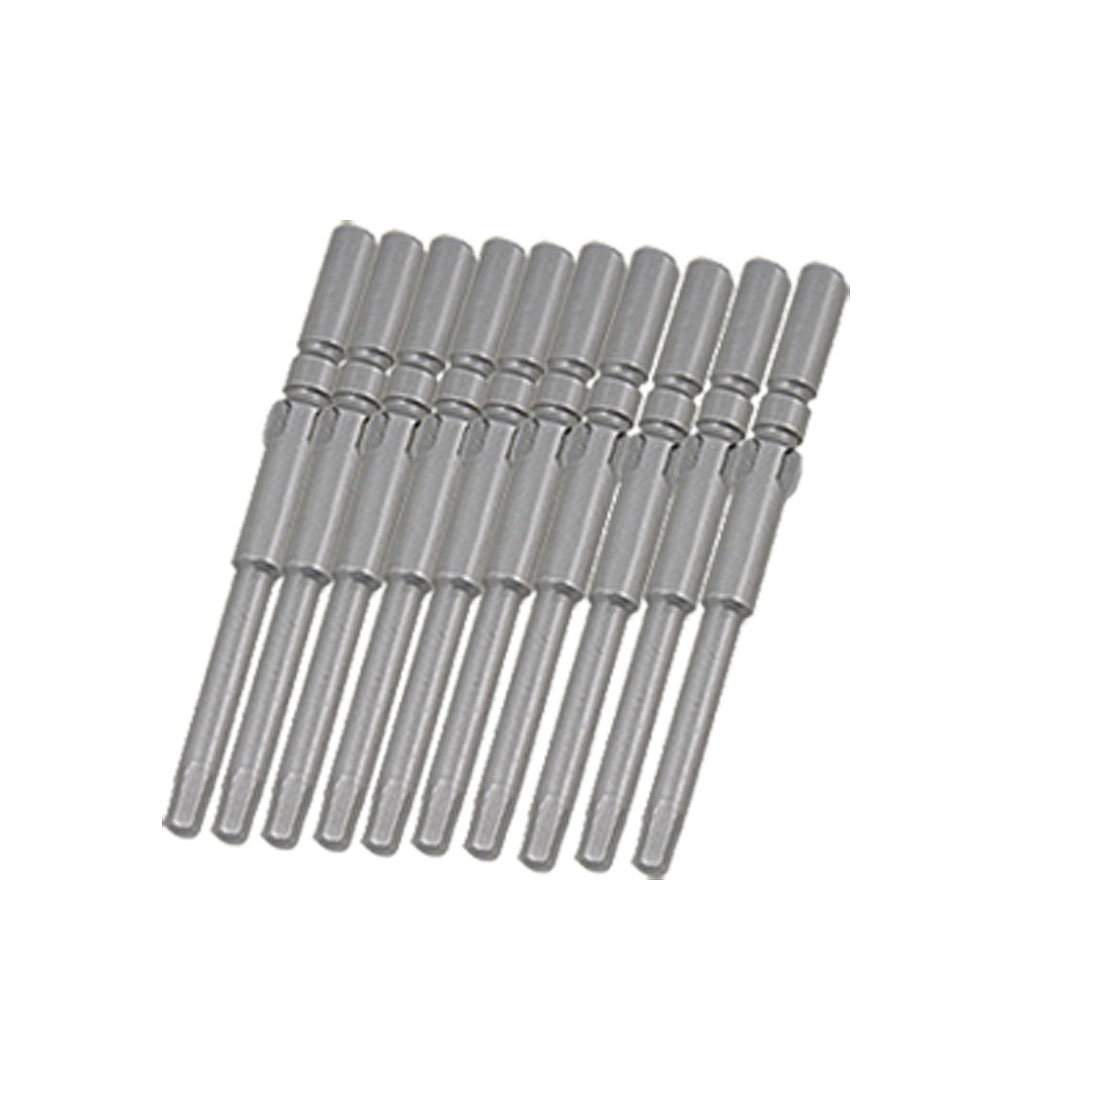 10 PCS 5 x 60 x 3mm Round Shank Hex Bits Tips for Screwdriver